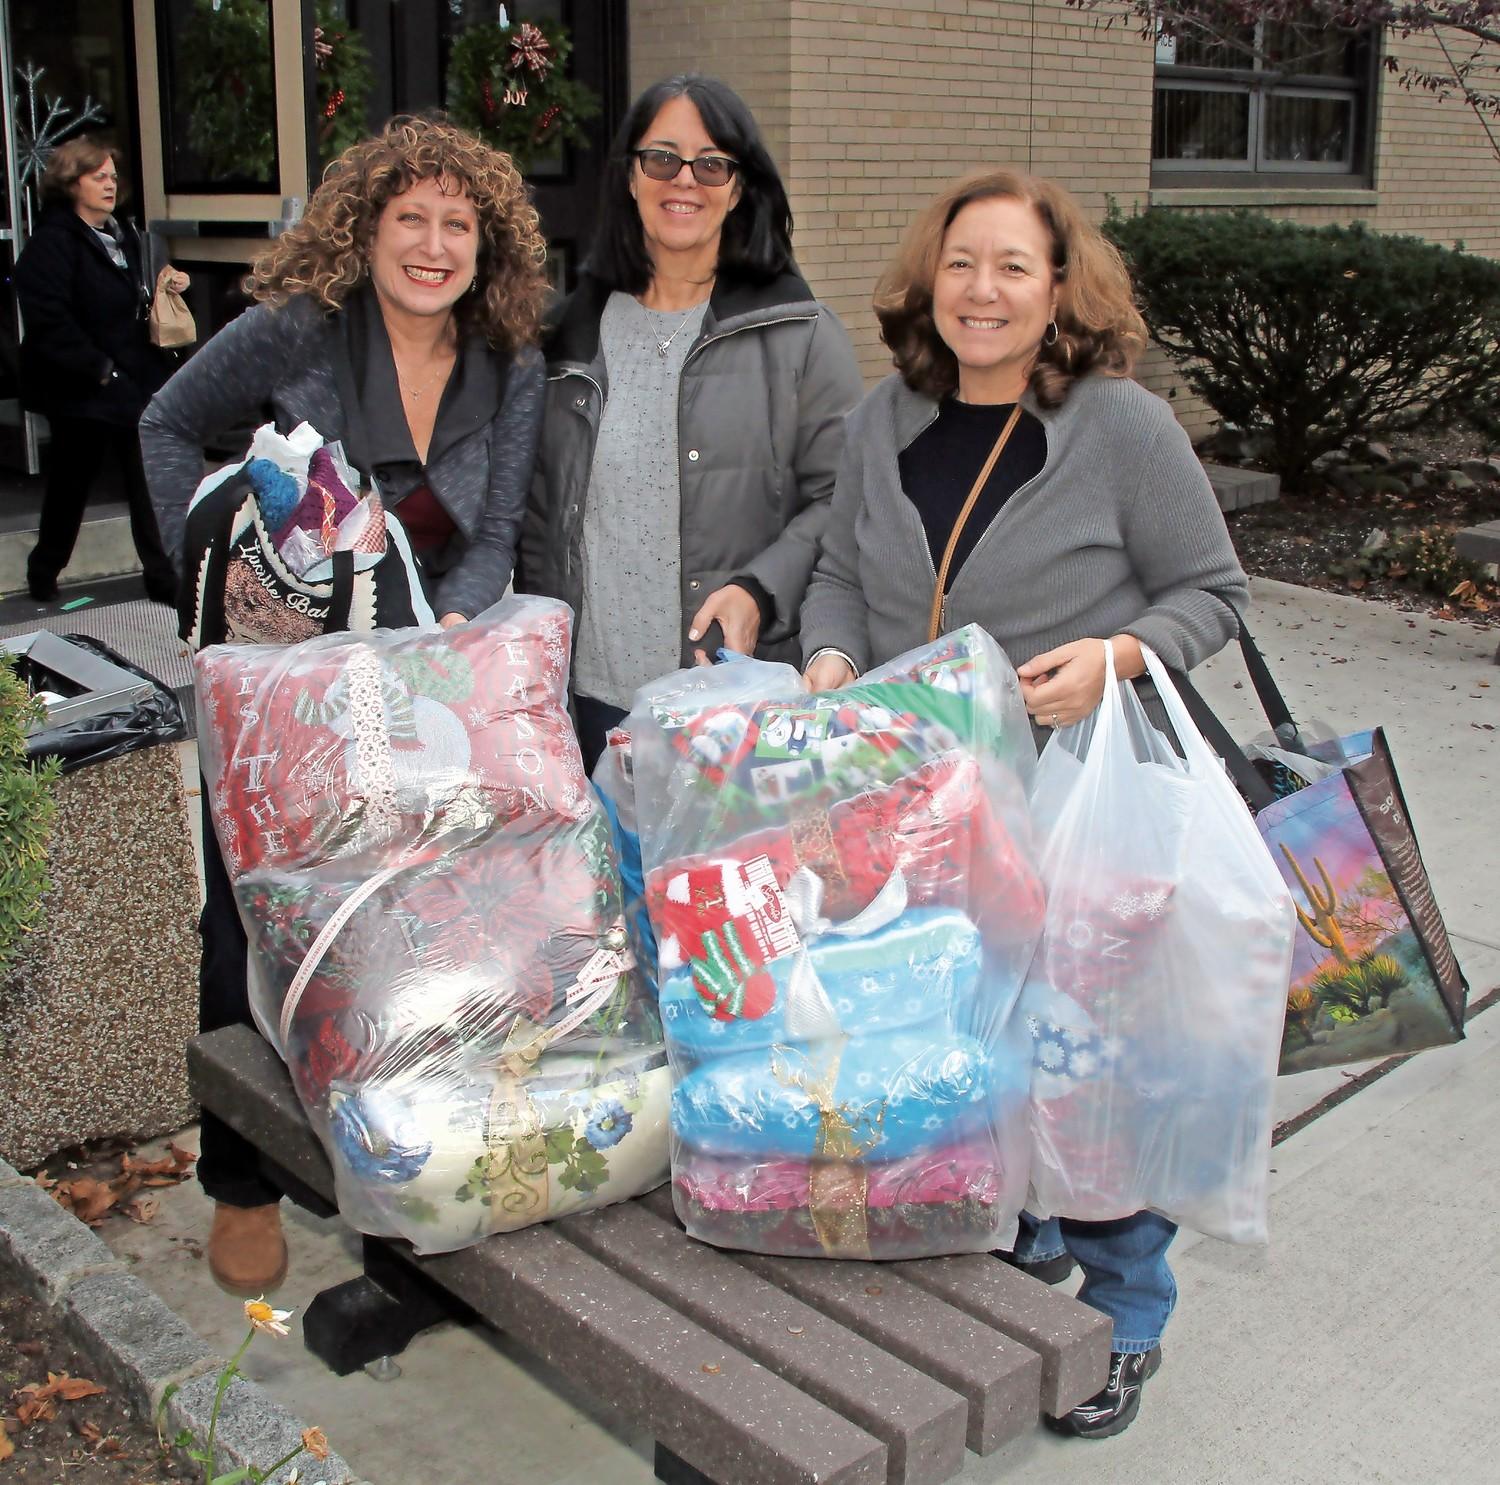 From left, Wendy Russo, Mary Jo Carson and Pam Young stocked up on some presents for the school's holiday fair.